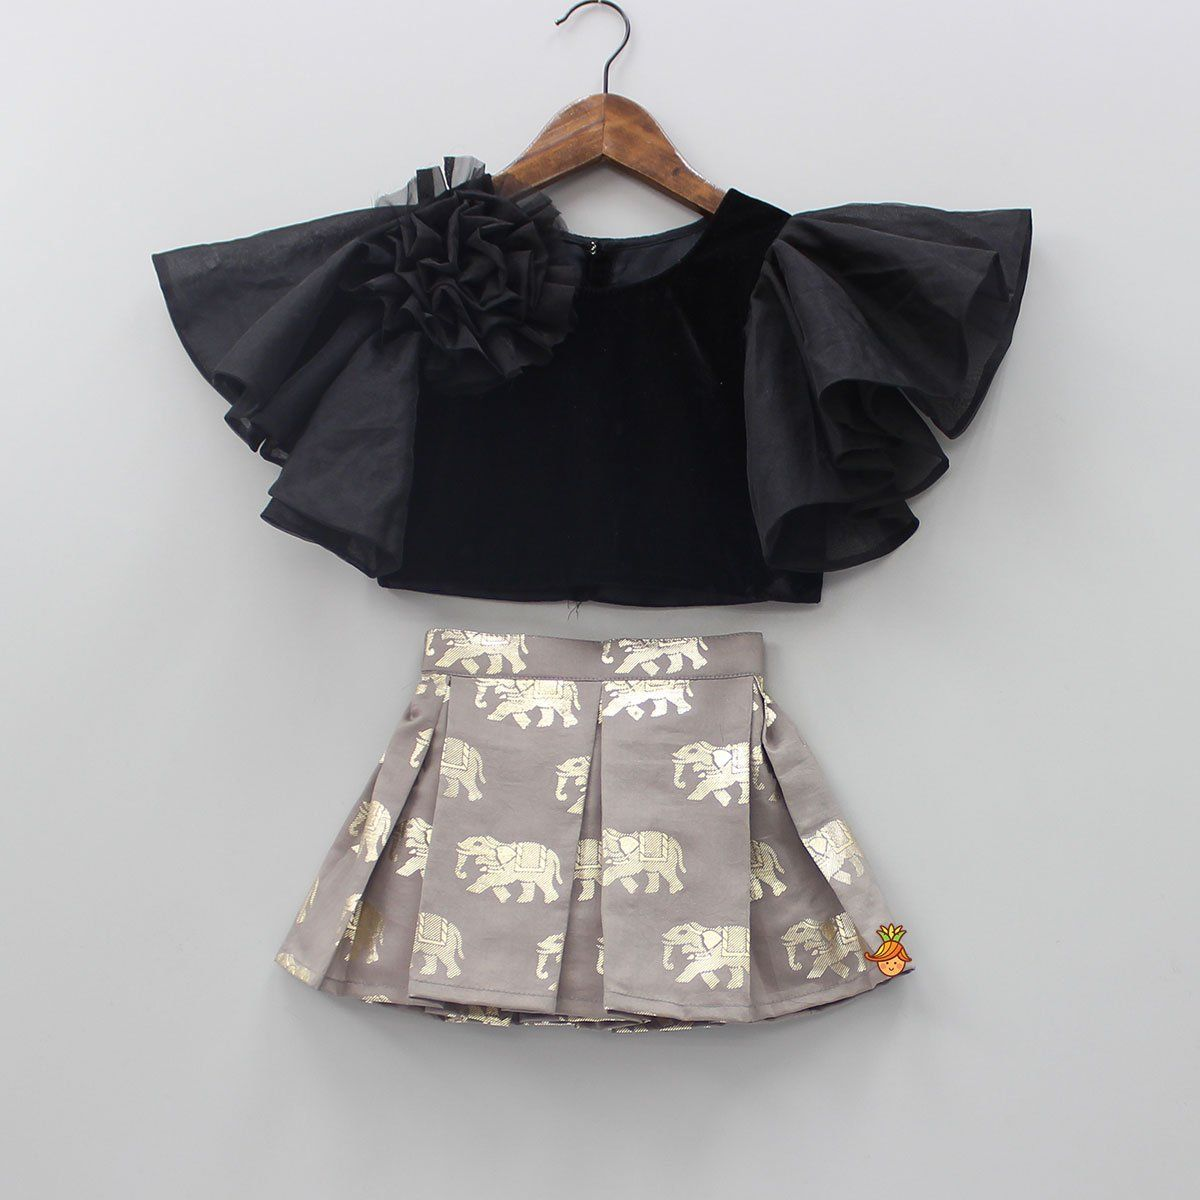 GOLDEN GIRL Little Girls Top And Skirt Dress